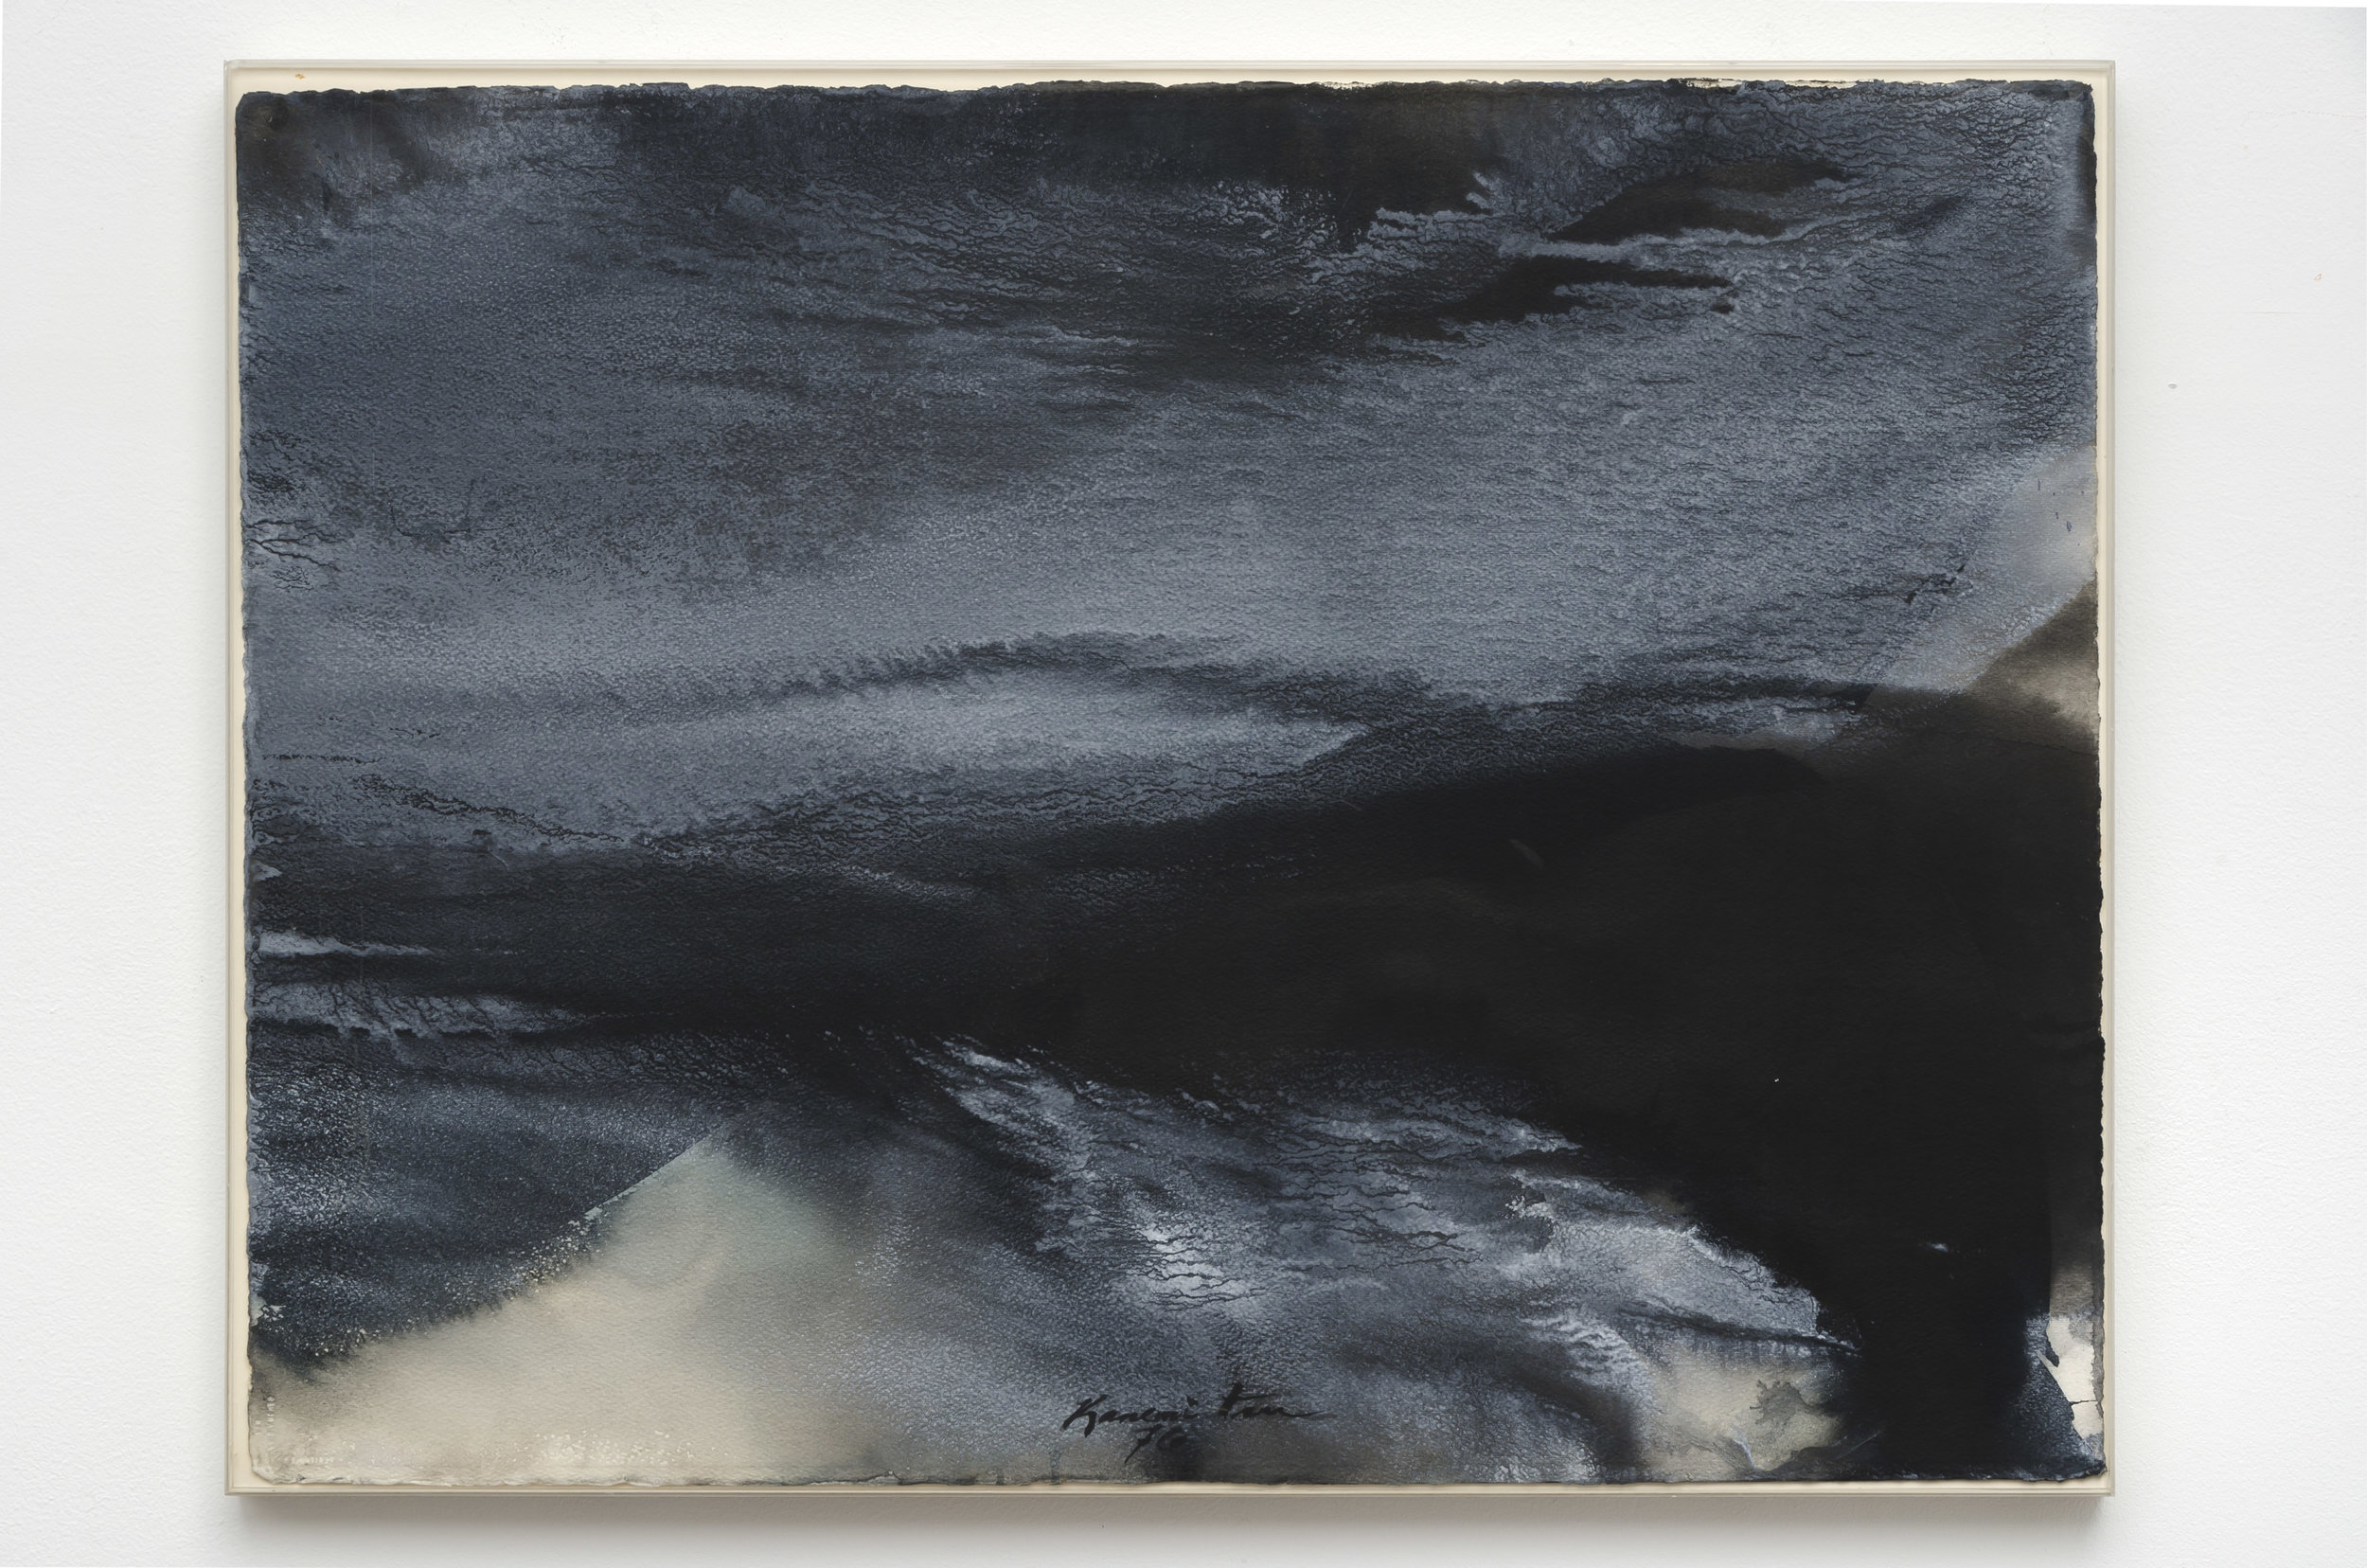 Mackerel Sky, San Francisco Bay , 1976 acrylic on paper 23 x 30 inches; 58.4 x 76.2 centimeters